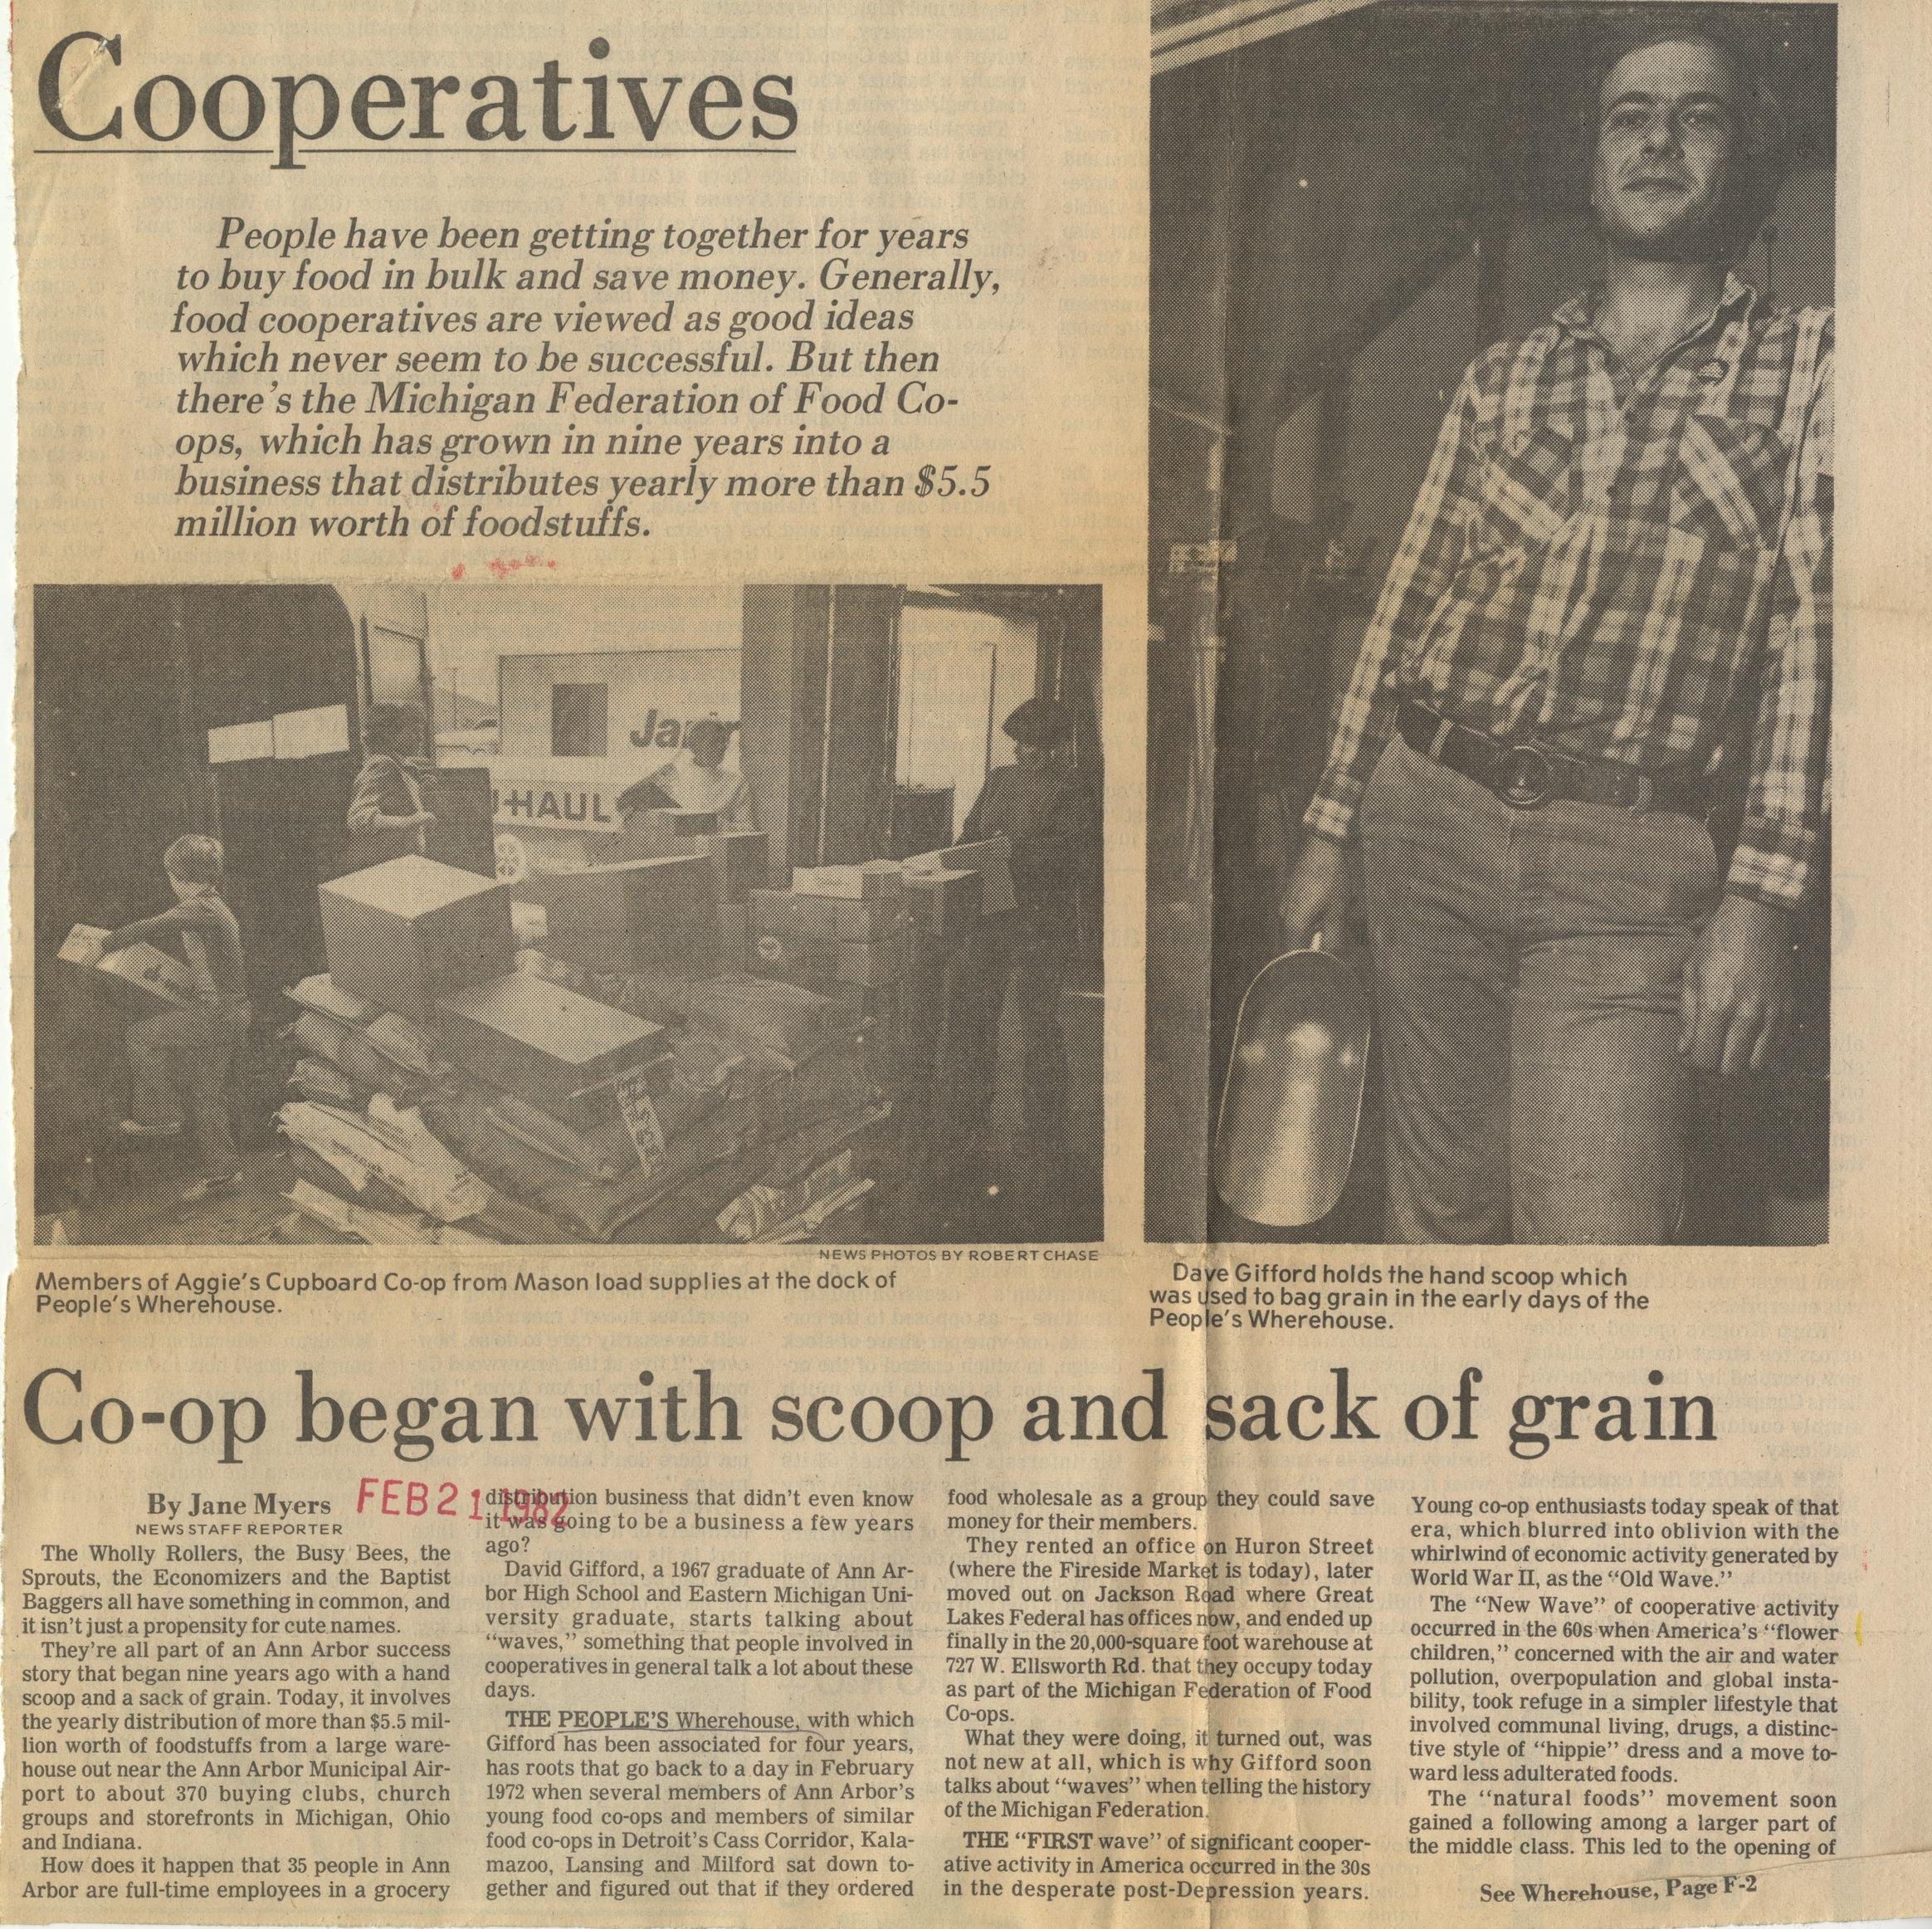 Co-op Began With Scoop And Sack Of Grains image